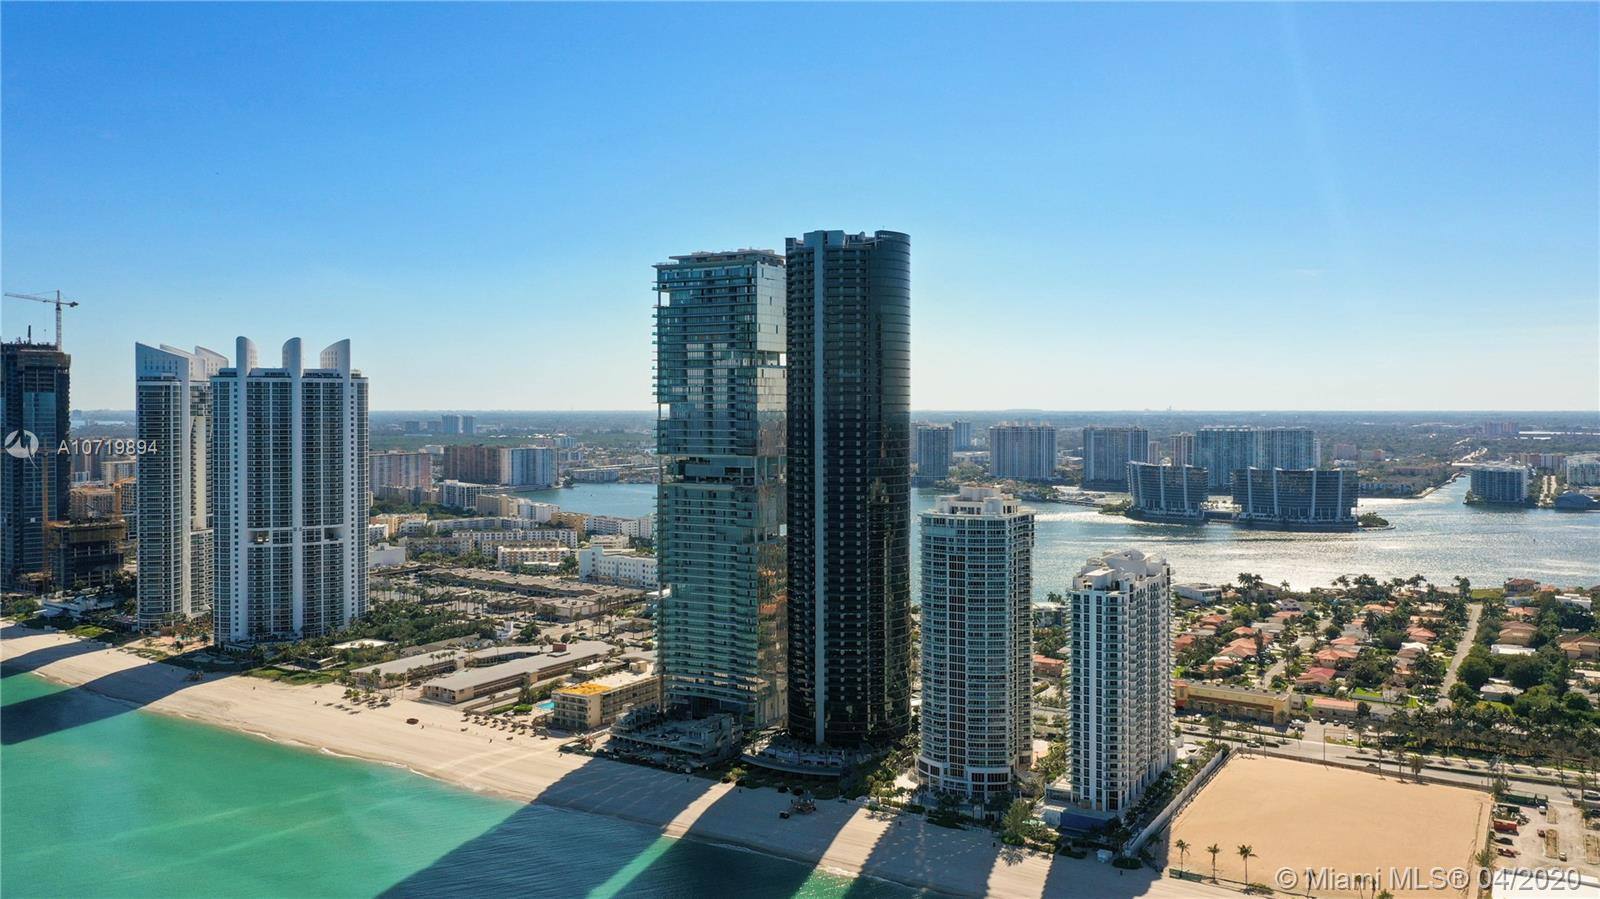 Last spectacular Duplex Ph unit available with best view in the building. Two story residence in Porsche Design Tower with 4 car garage, internal elevator, private pool, 2 balconies, 2 huge master bedrooms, sleek designer kitchen, EMPERADOR SPANIH MARBLE 48/48, unobstructed ocean and intracoastal views, private beach with sunset pool yoga center, state of the art gym, with simulator technology (VRX motion Z-55 racing), movie theater, restaurant and more!